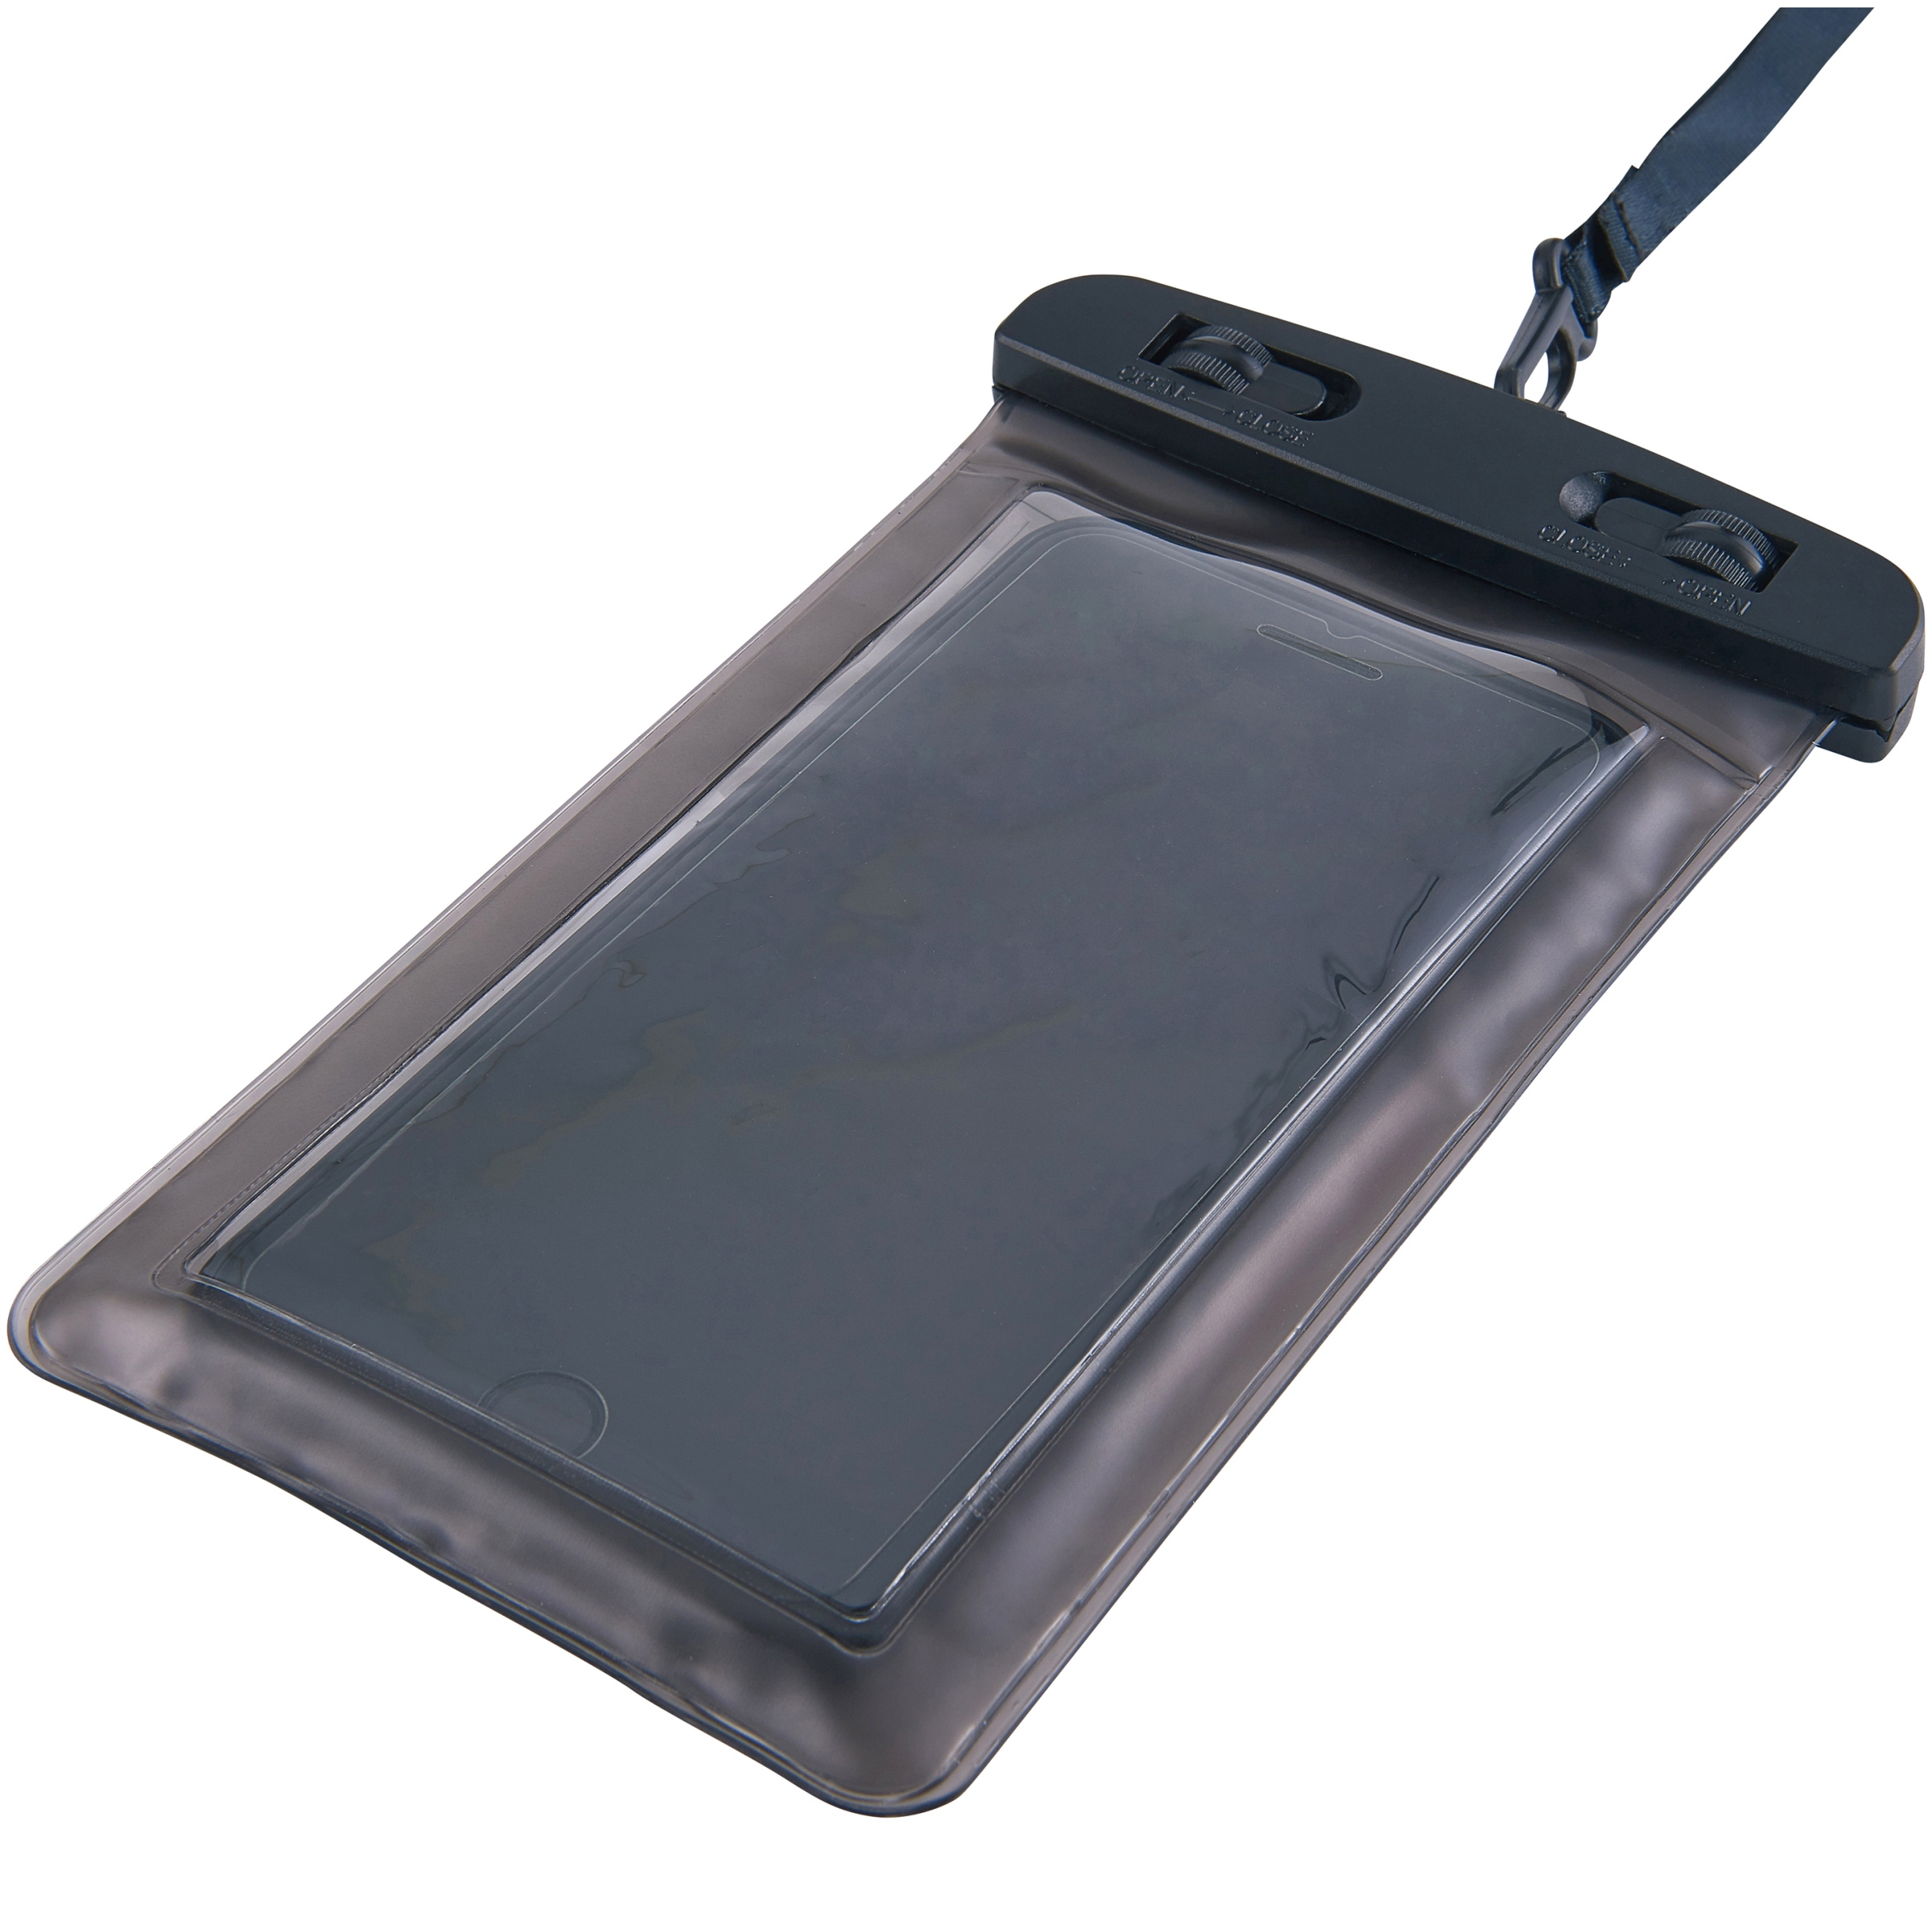 ONN™ Mobile Phone Waterproof Bag Transparent Finish with Fully Submersible Design